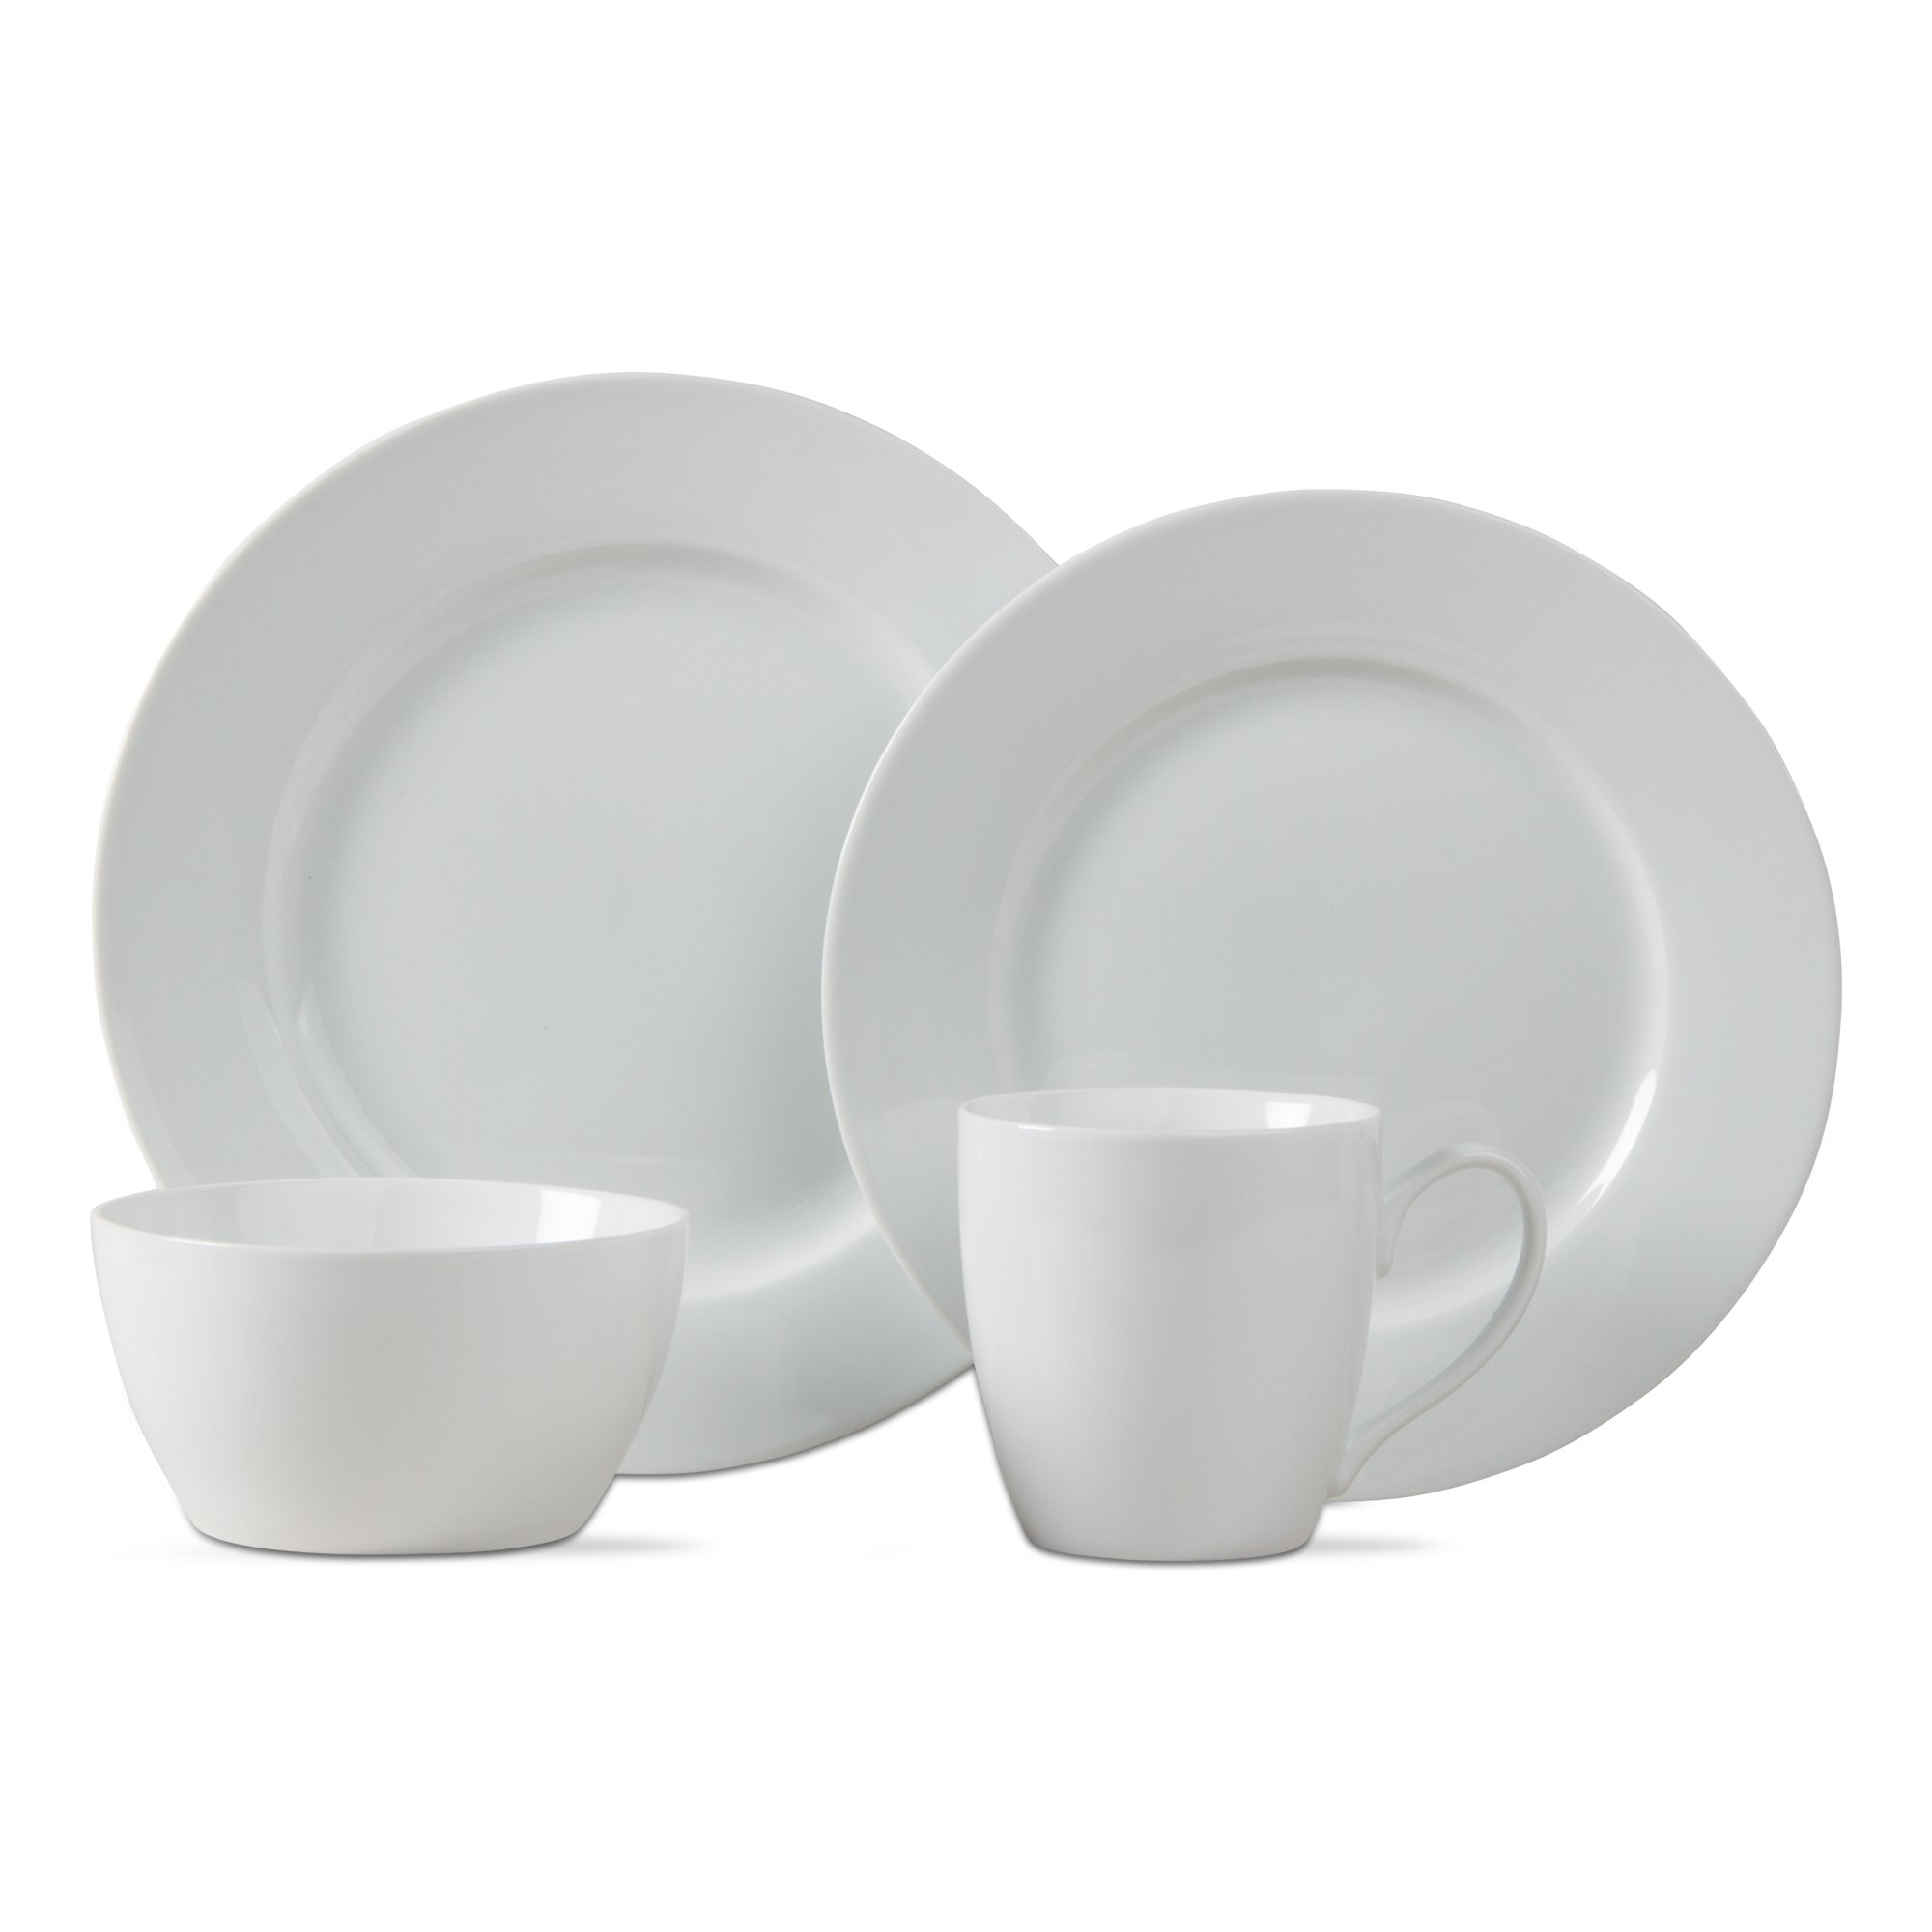 tag - Bliss Porcelain Dinnerware Set, Restaurant-Grade Porcelain that is Perfect for Everyday Use, White (16 Piece Set)